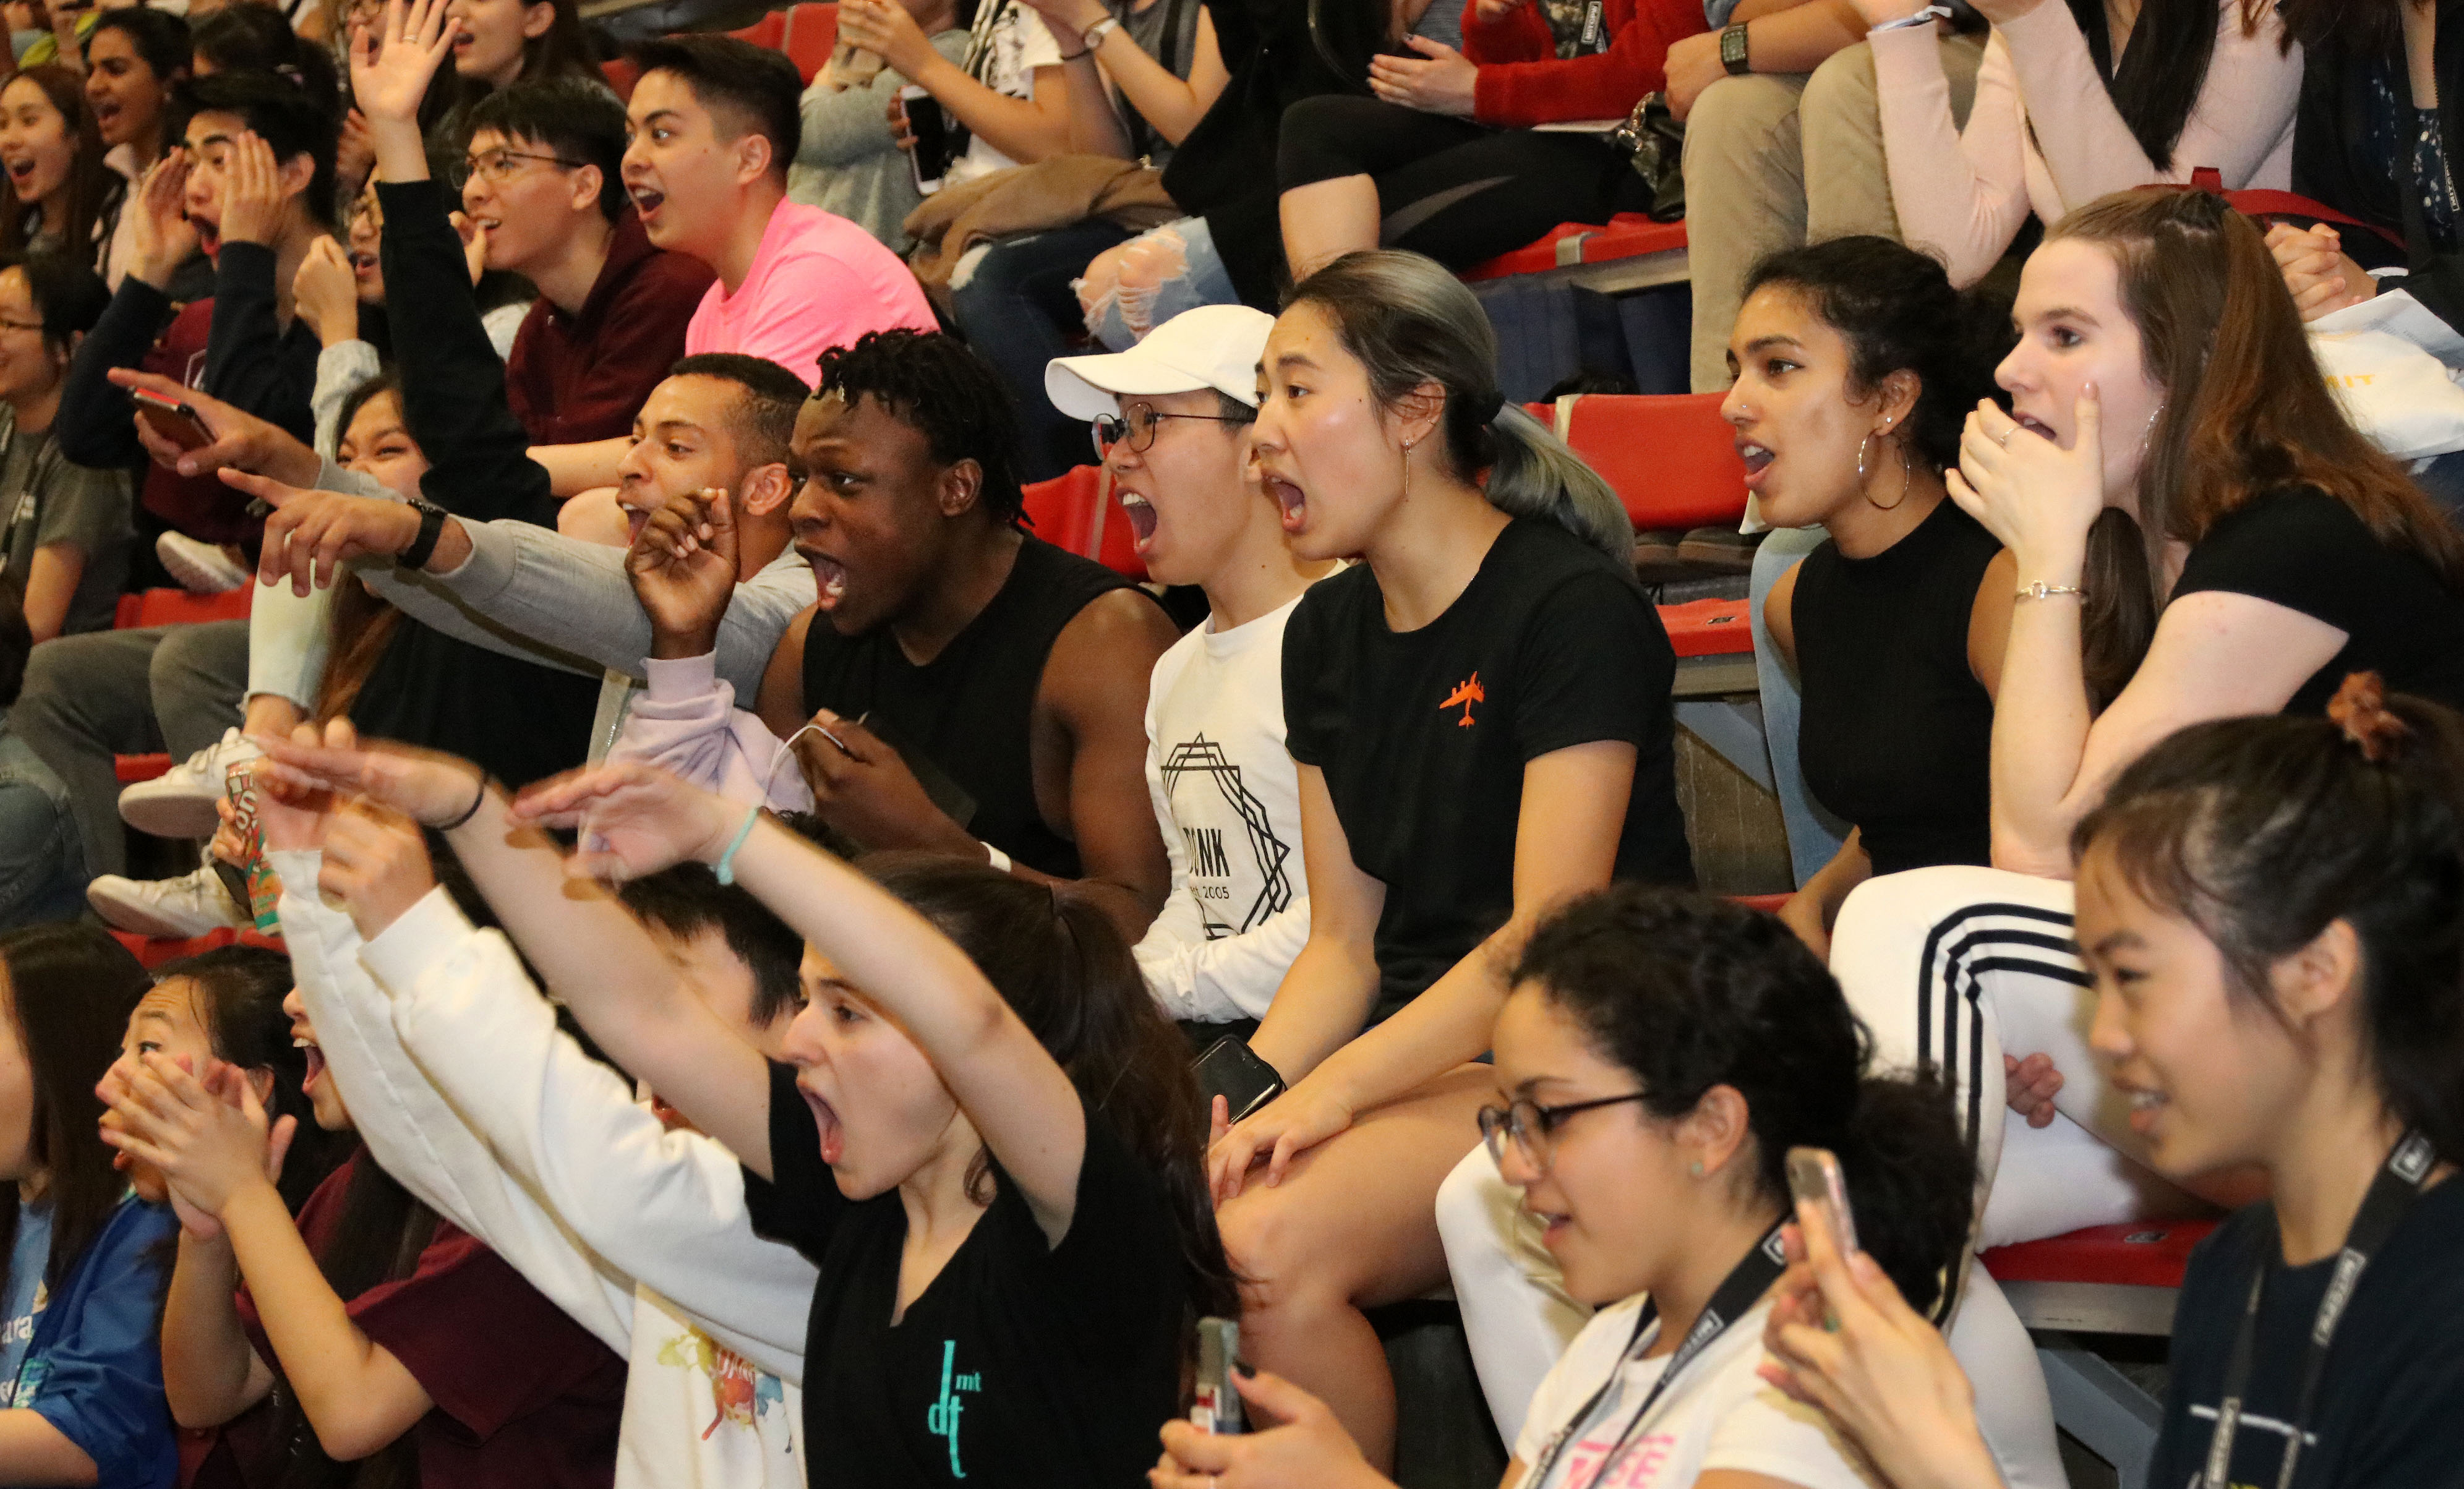 Students cheer at a dance performance